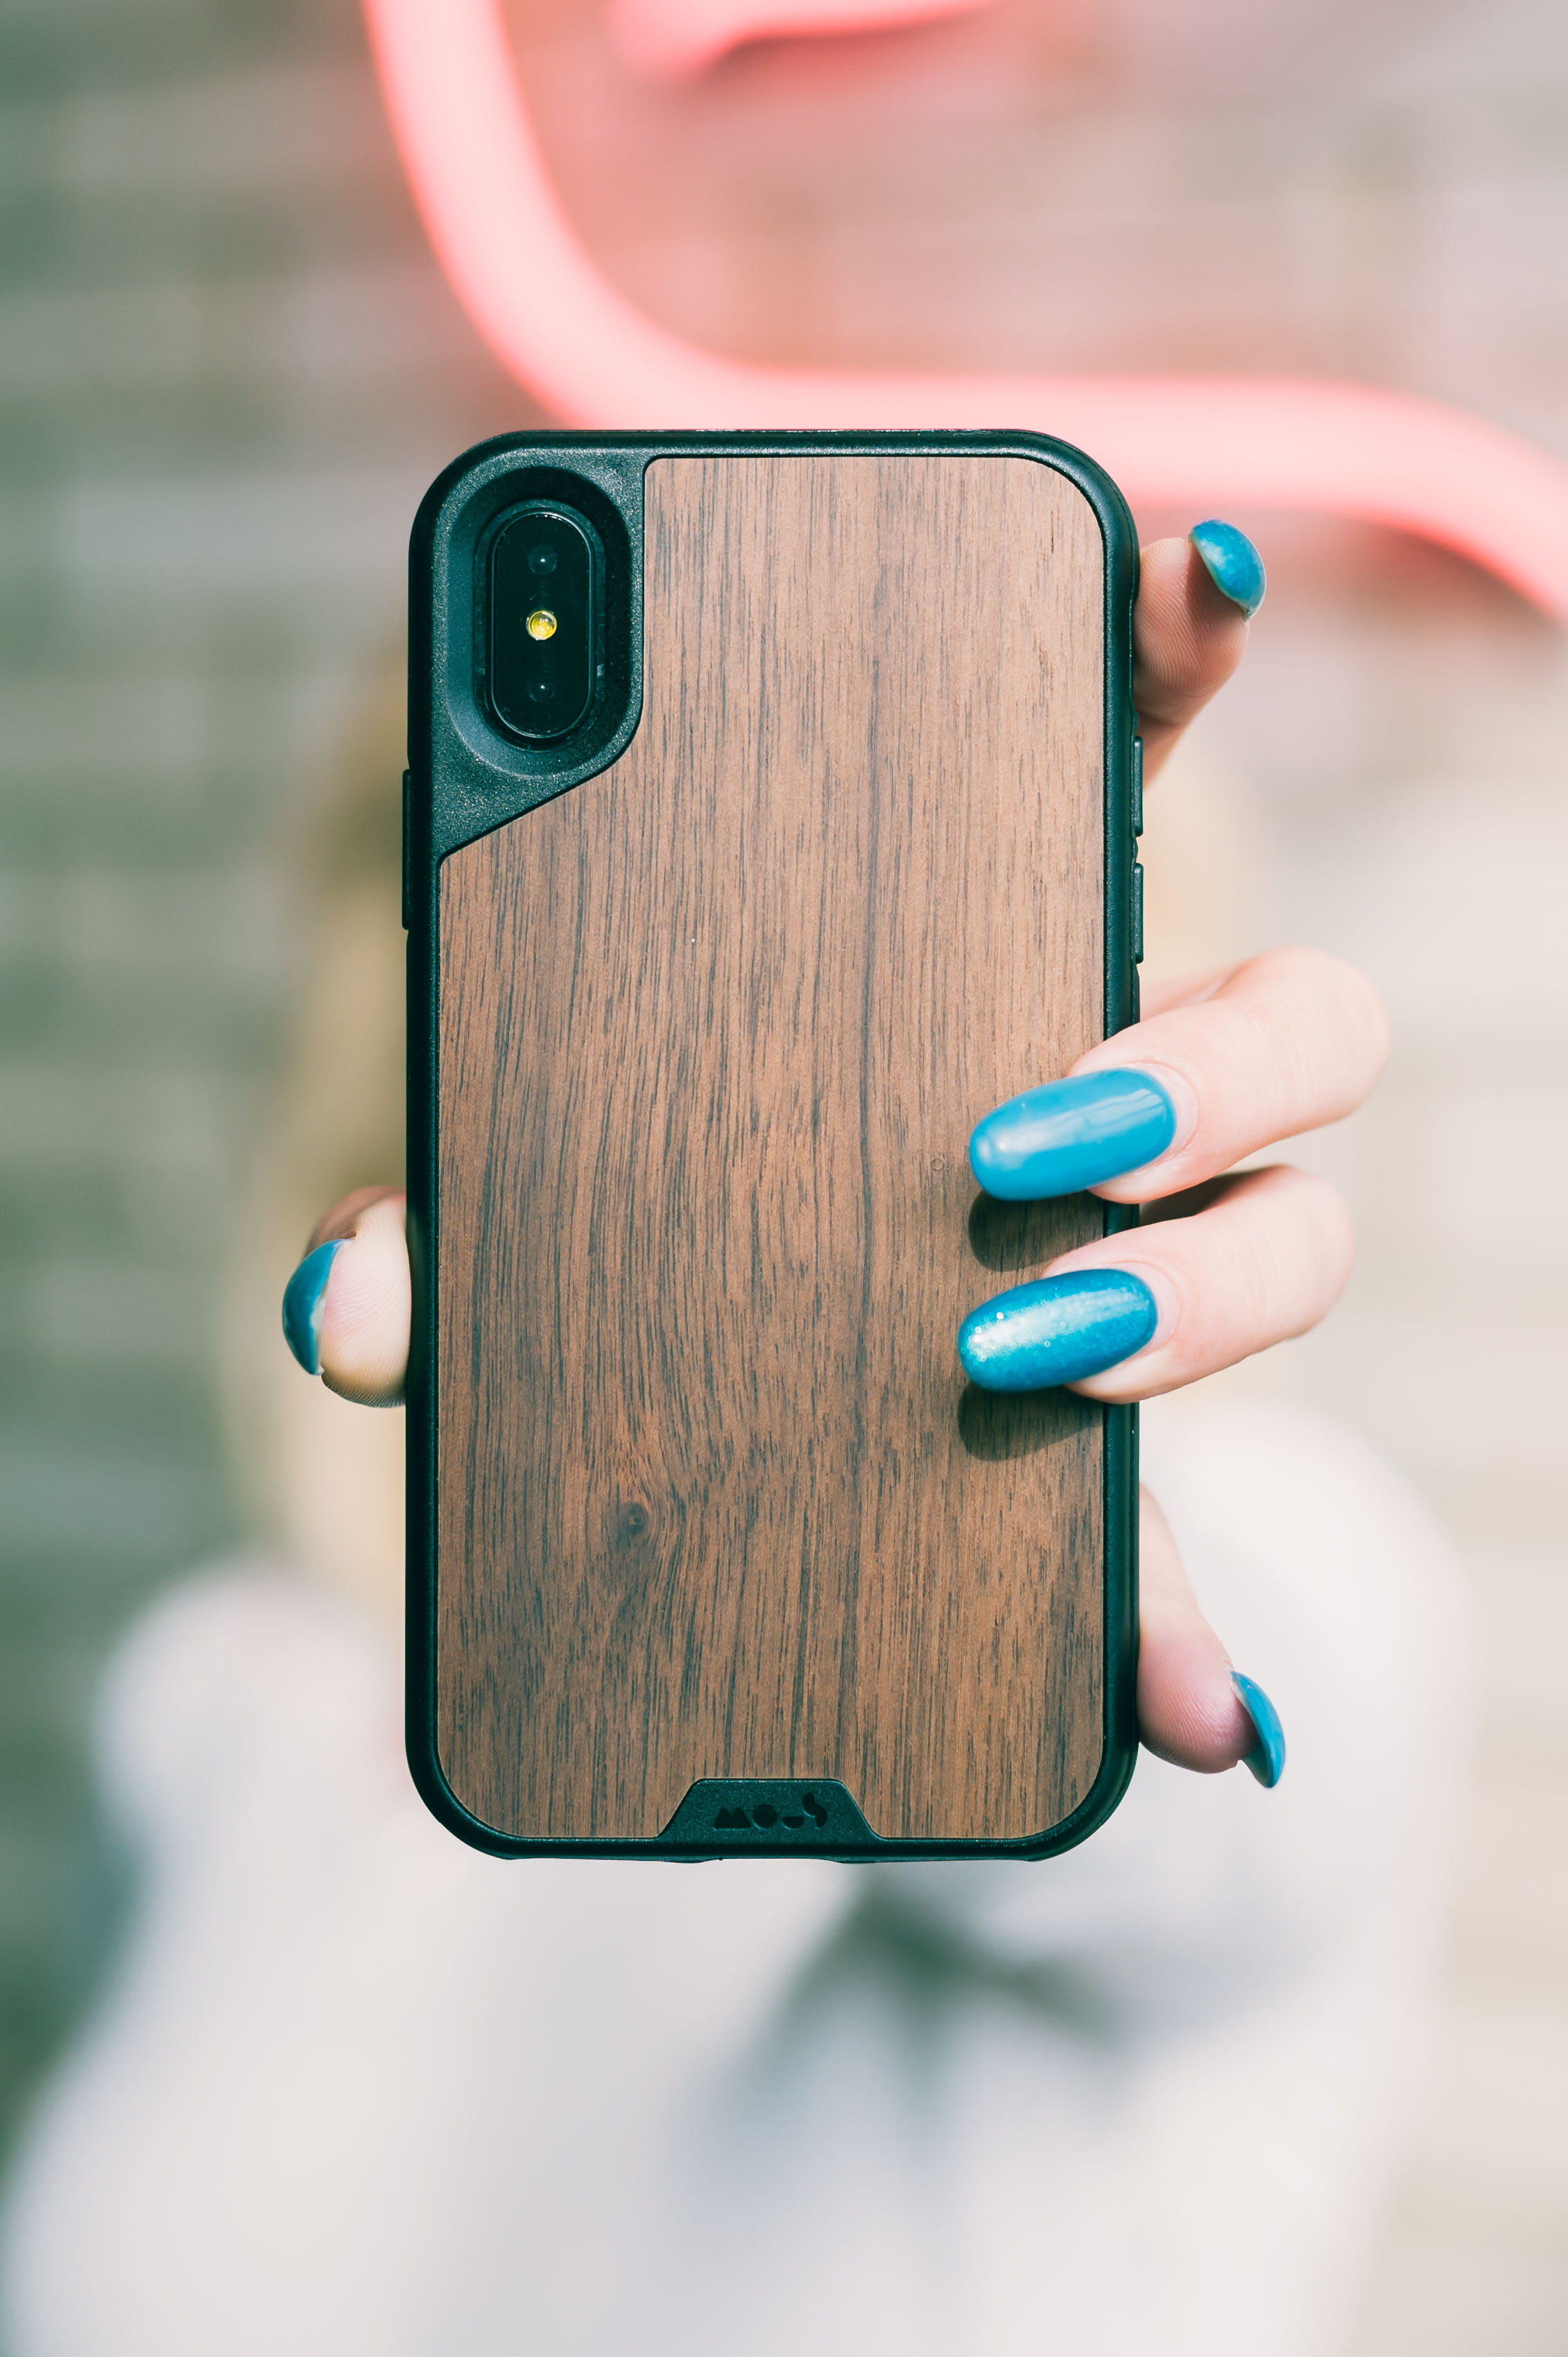 mous-walnut-iphone-x-case-cool.jpg